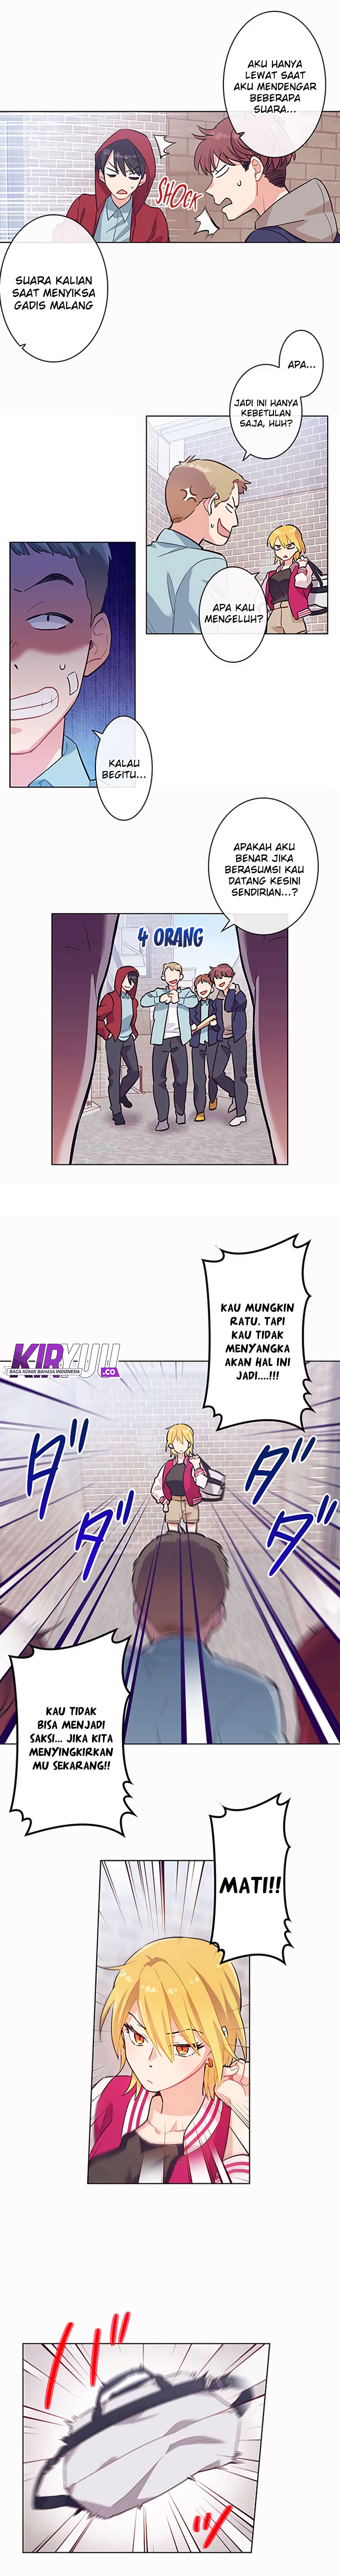 The Strongest Girl Chapter 25